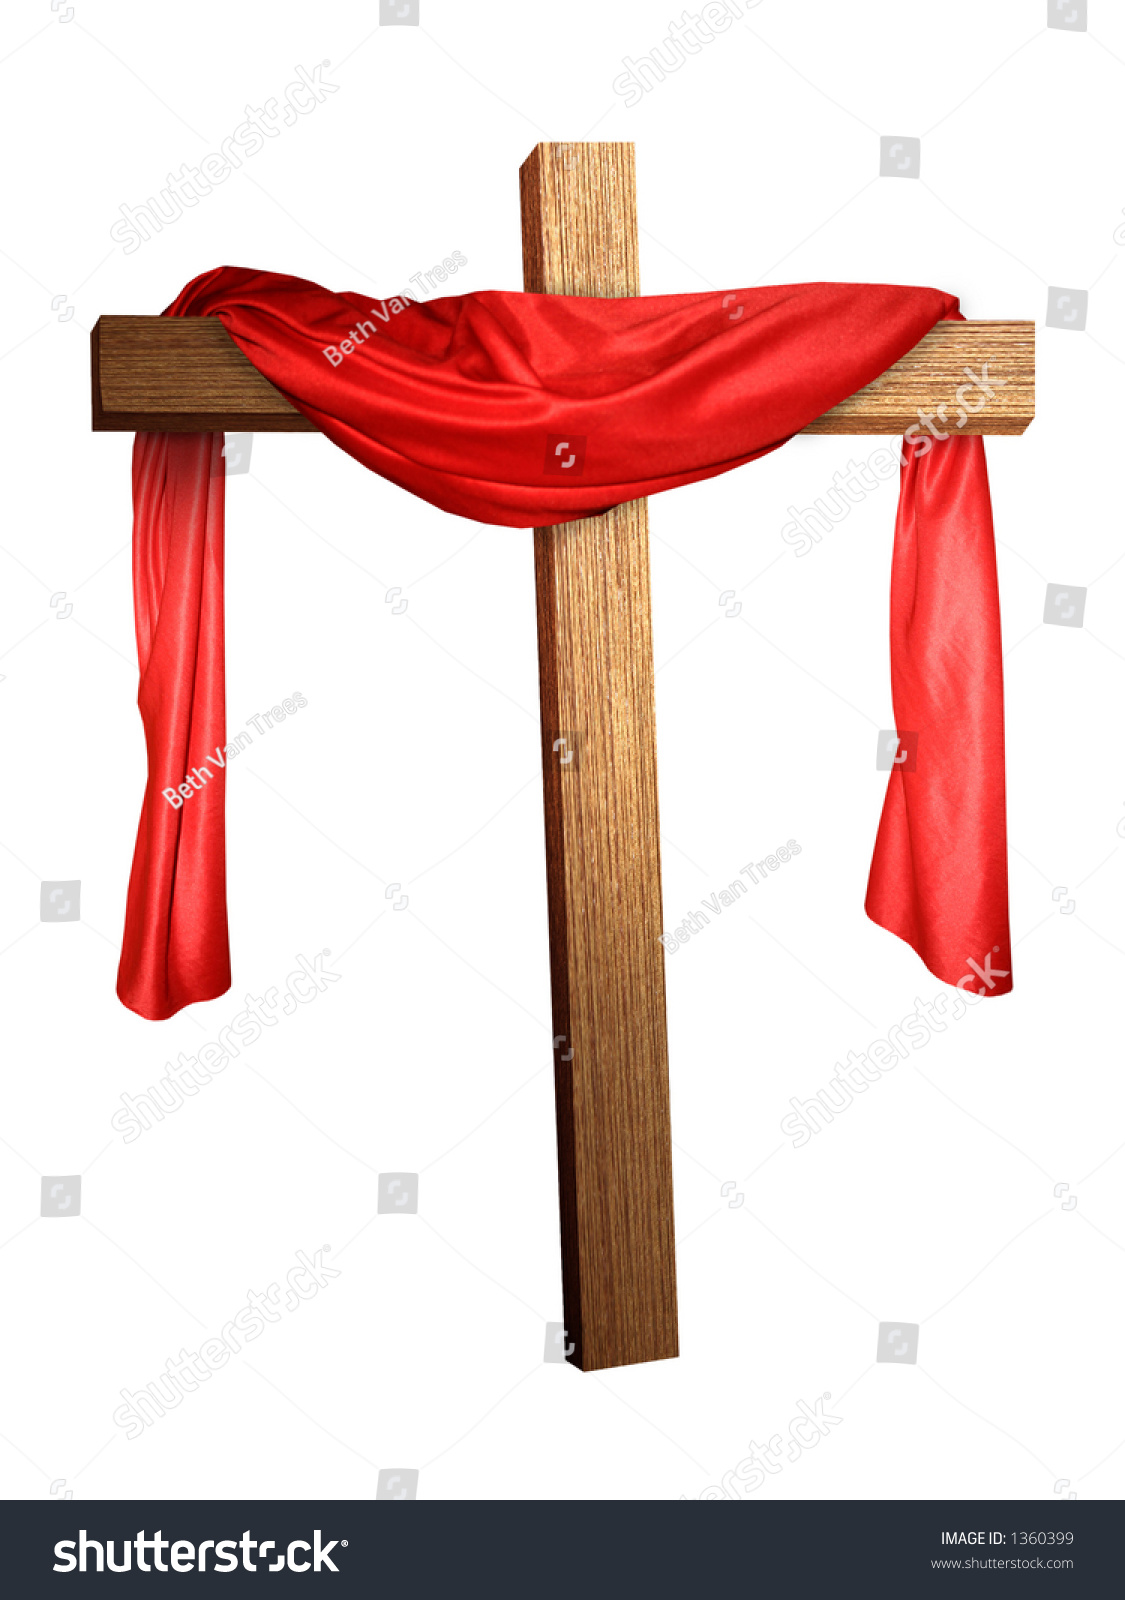 a cross with a red cloth draped on it stock photo 1360399